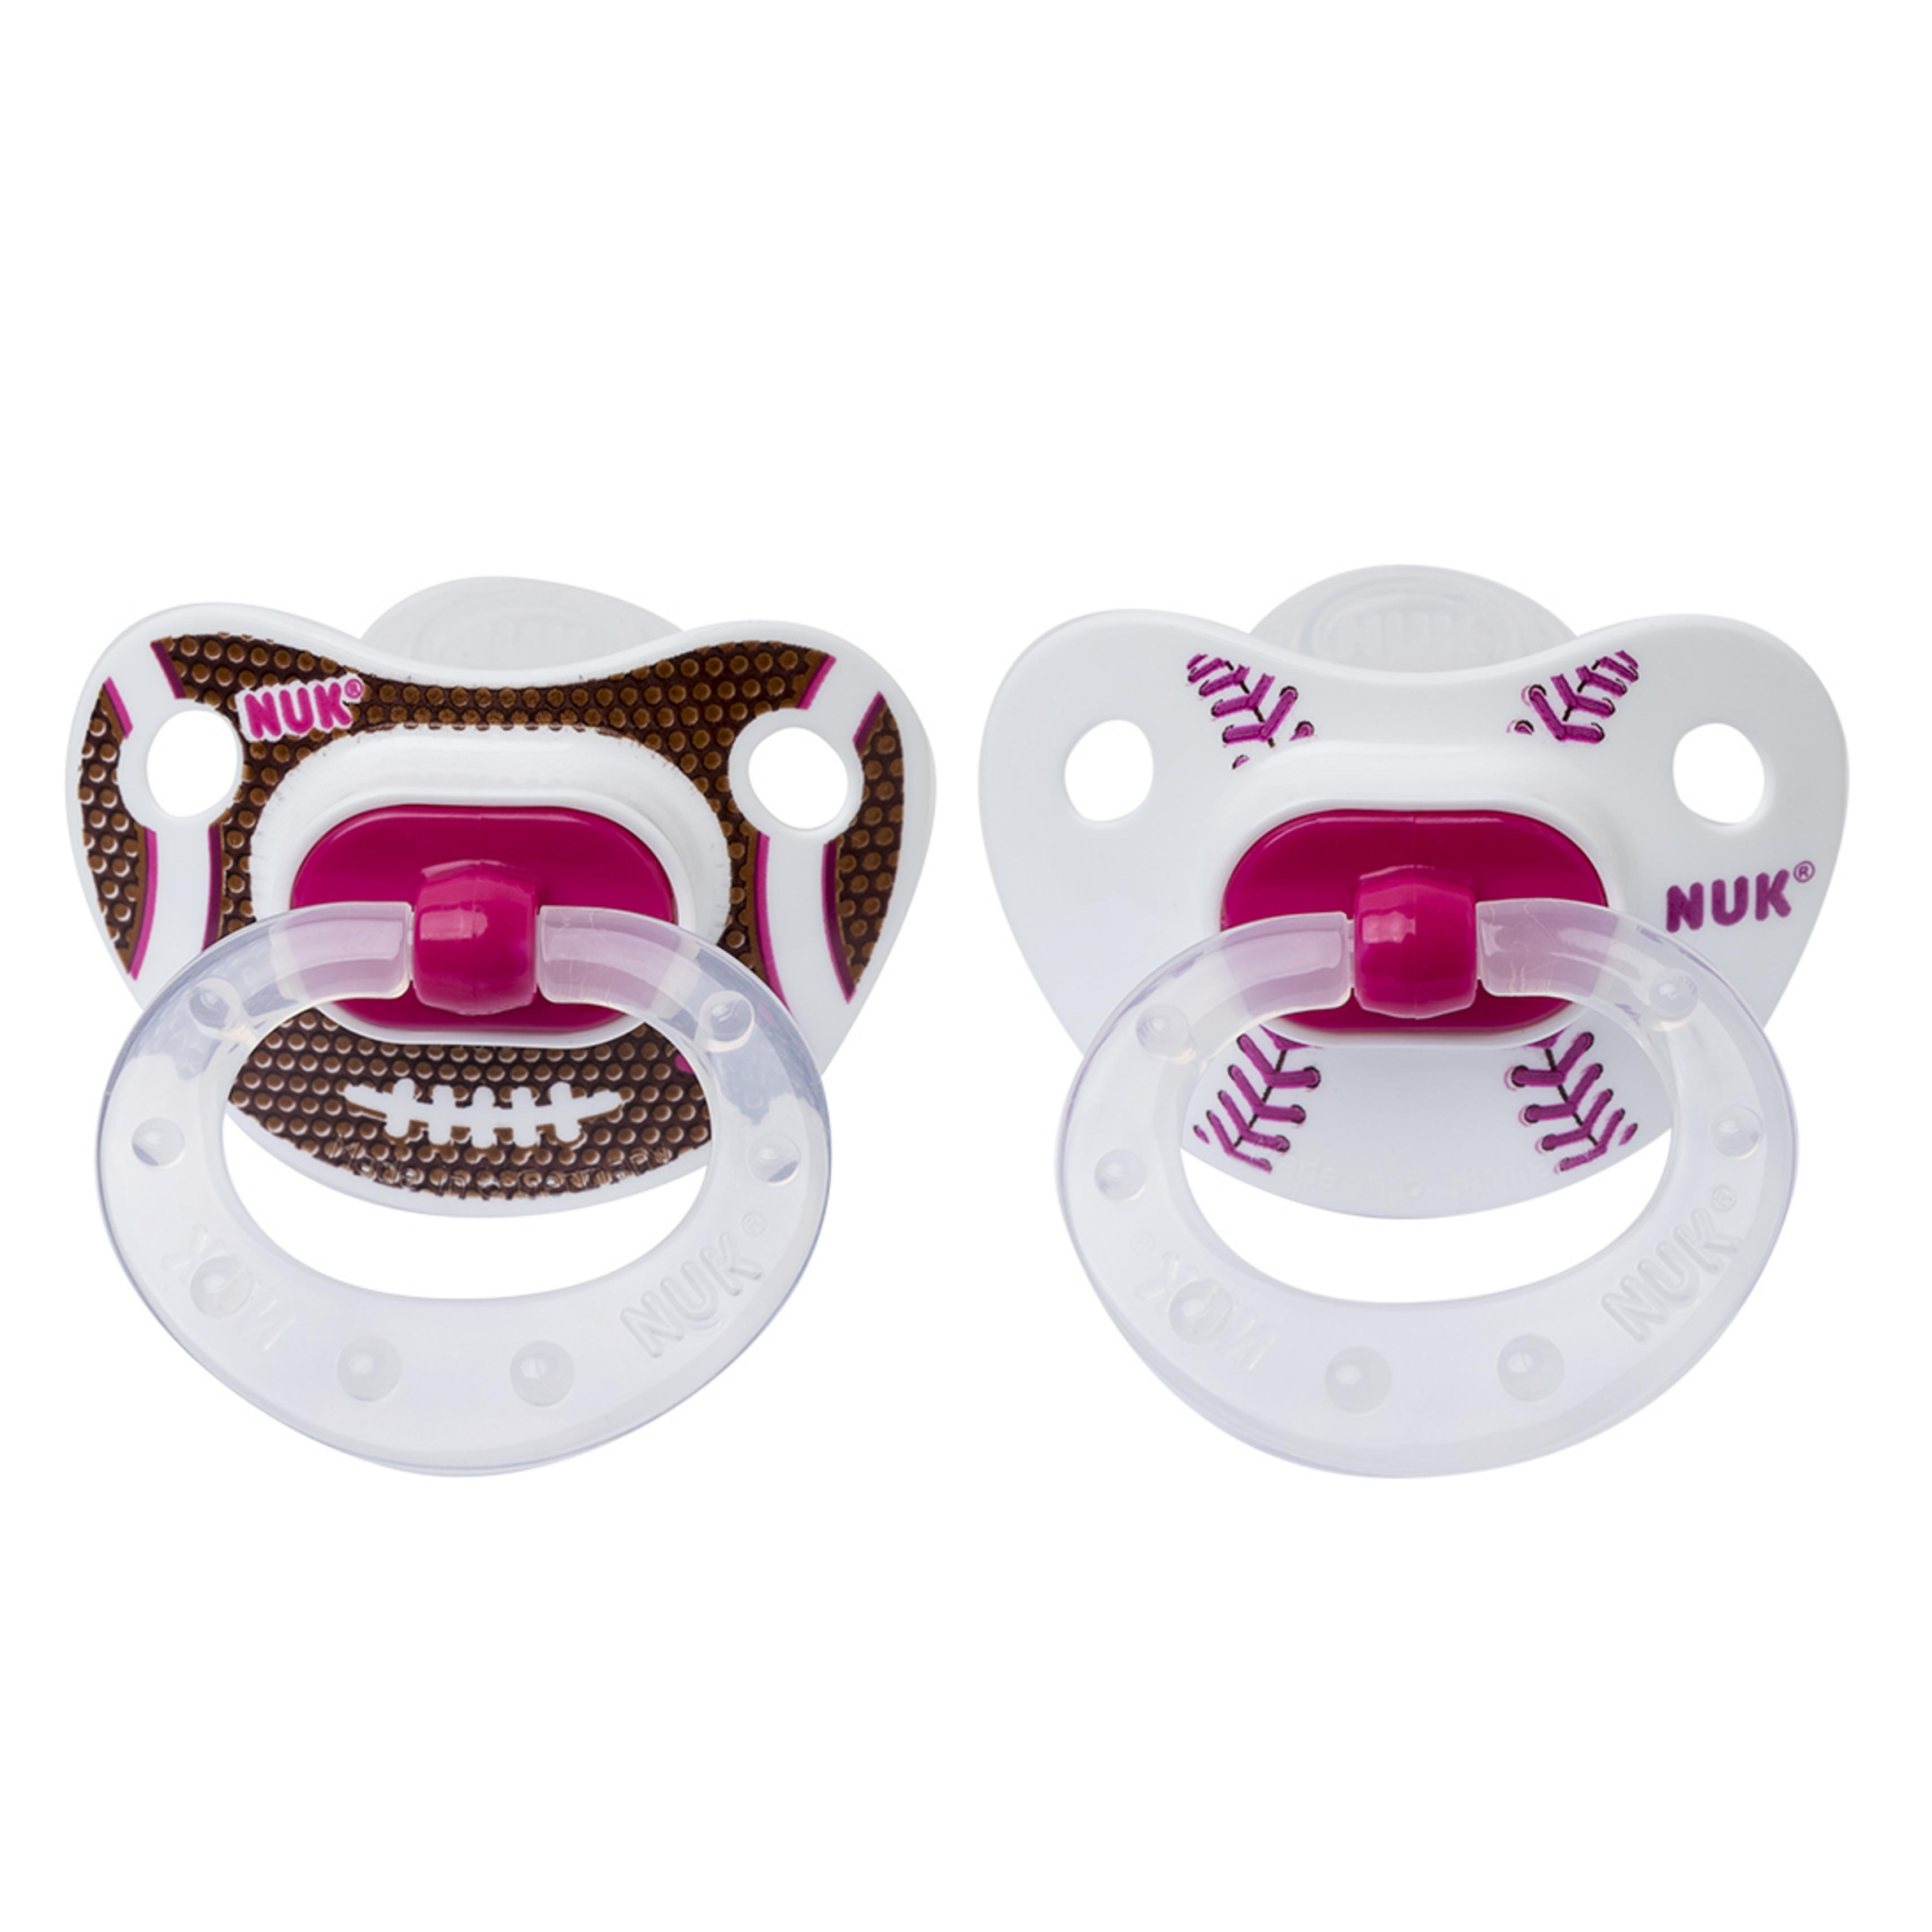 NUK Sports Orthodontic Pacifier, 0-6 Months, 2 pack